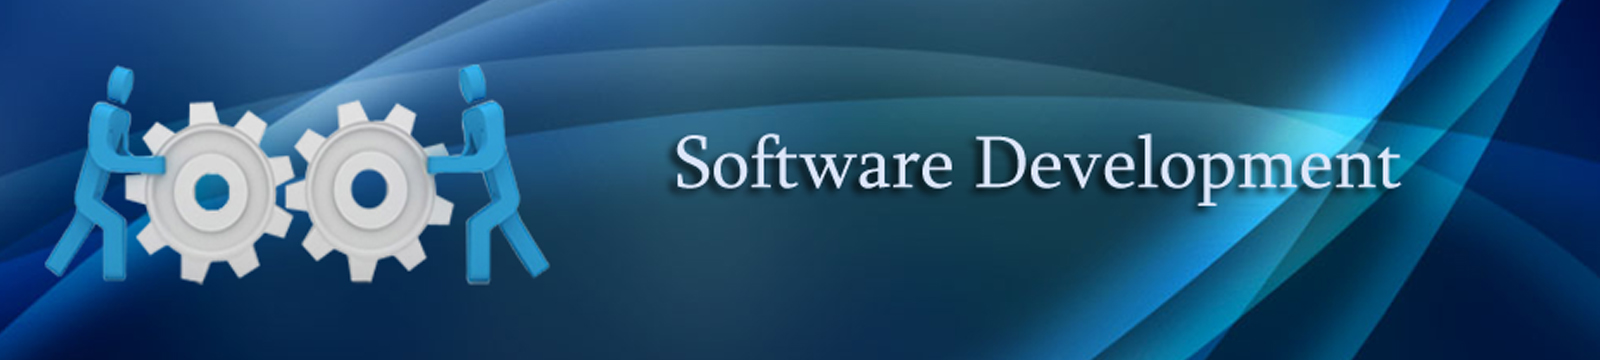 software solutions banner